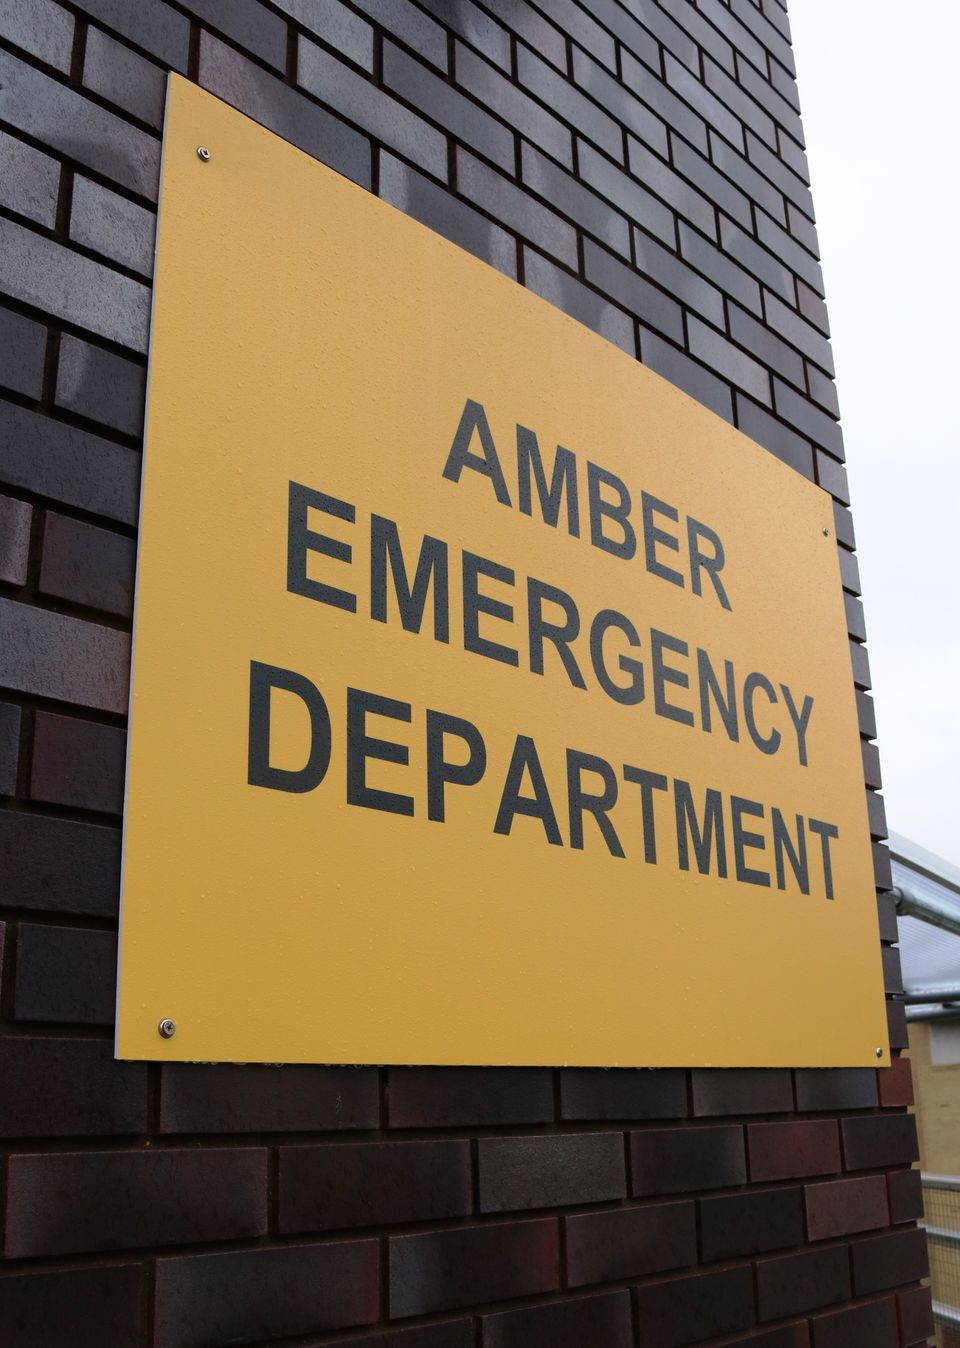 The hospital's A&E department has effectively been split into two. Patients without Covid symptoms are sent to the 'amber emergency department'.